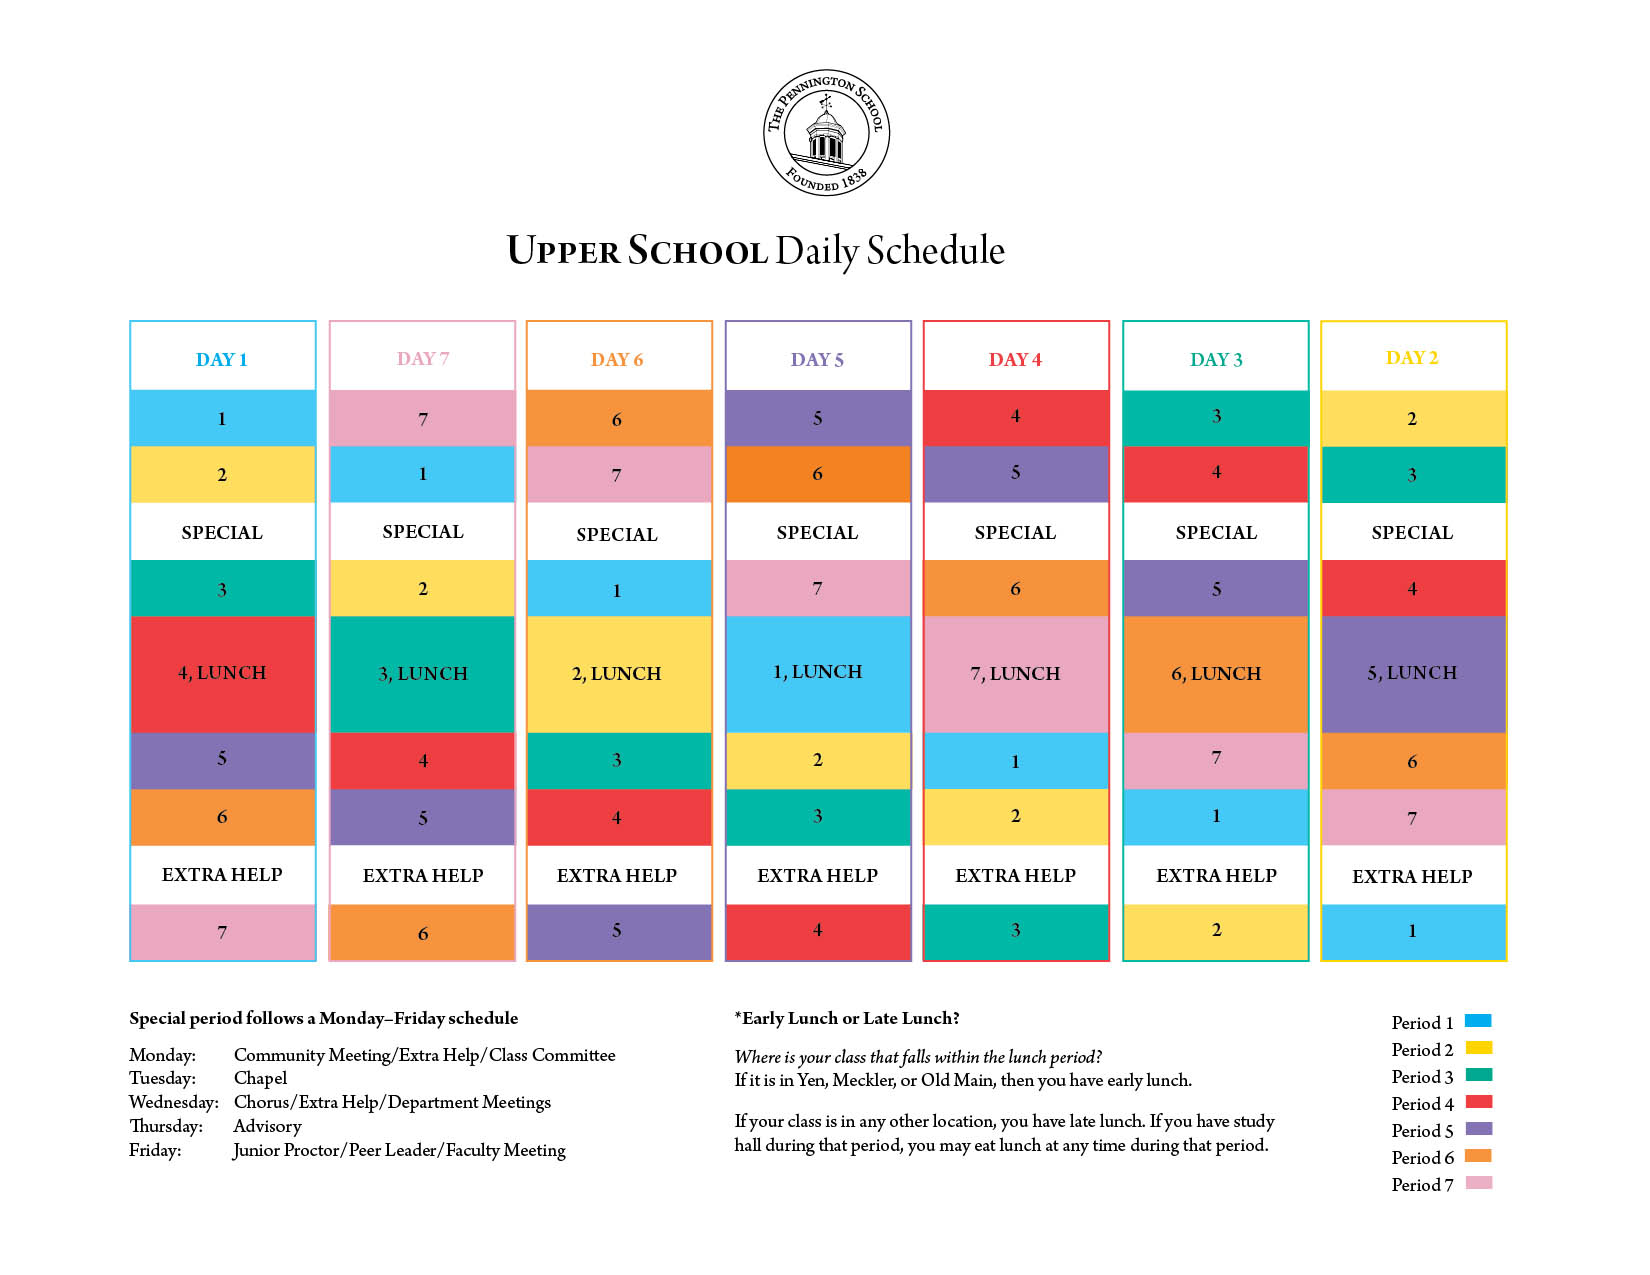 Upper School daily schedule